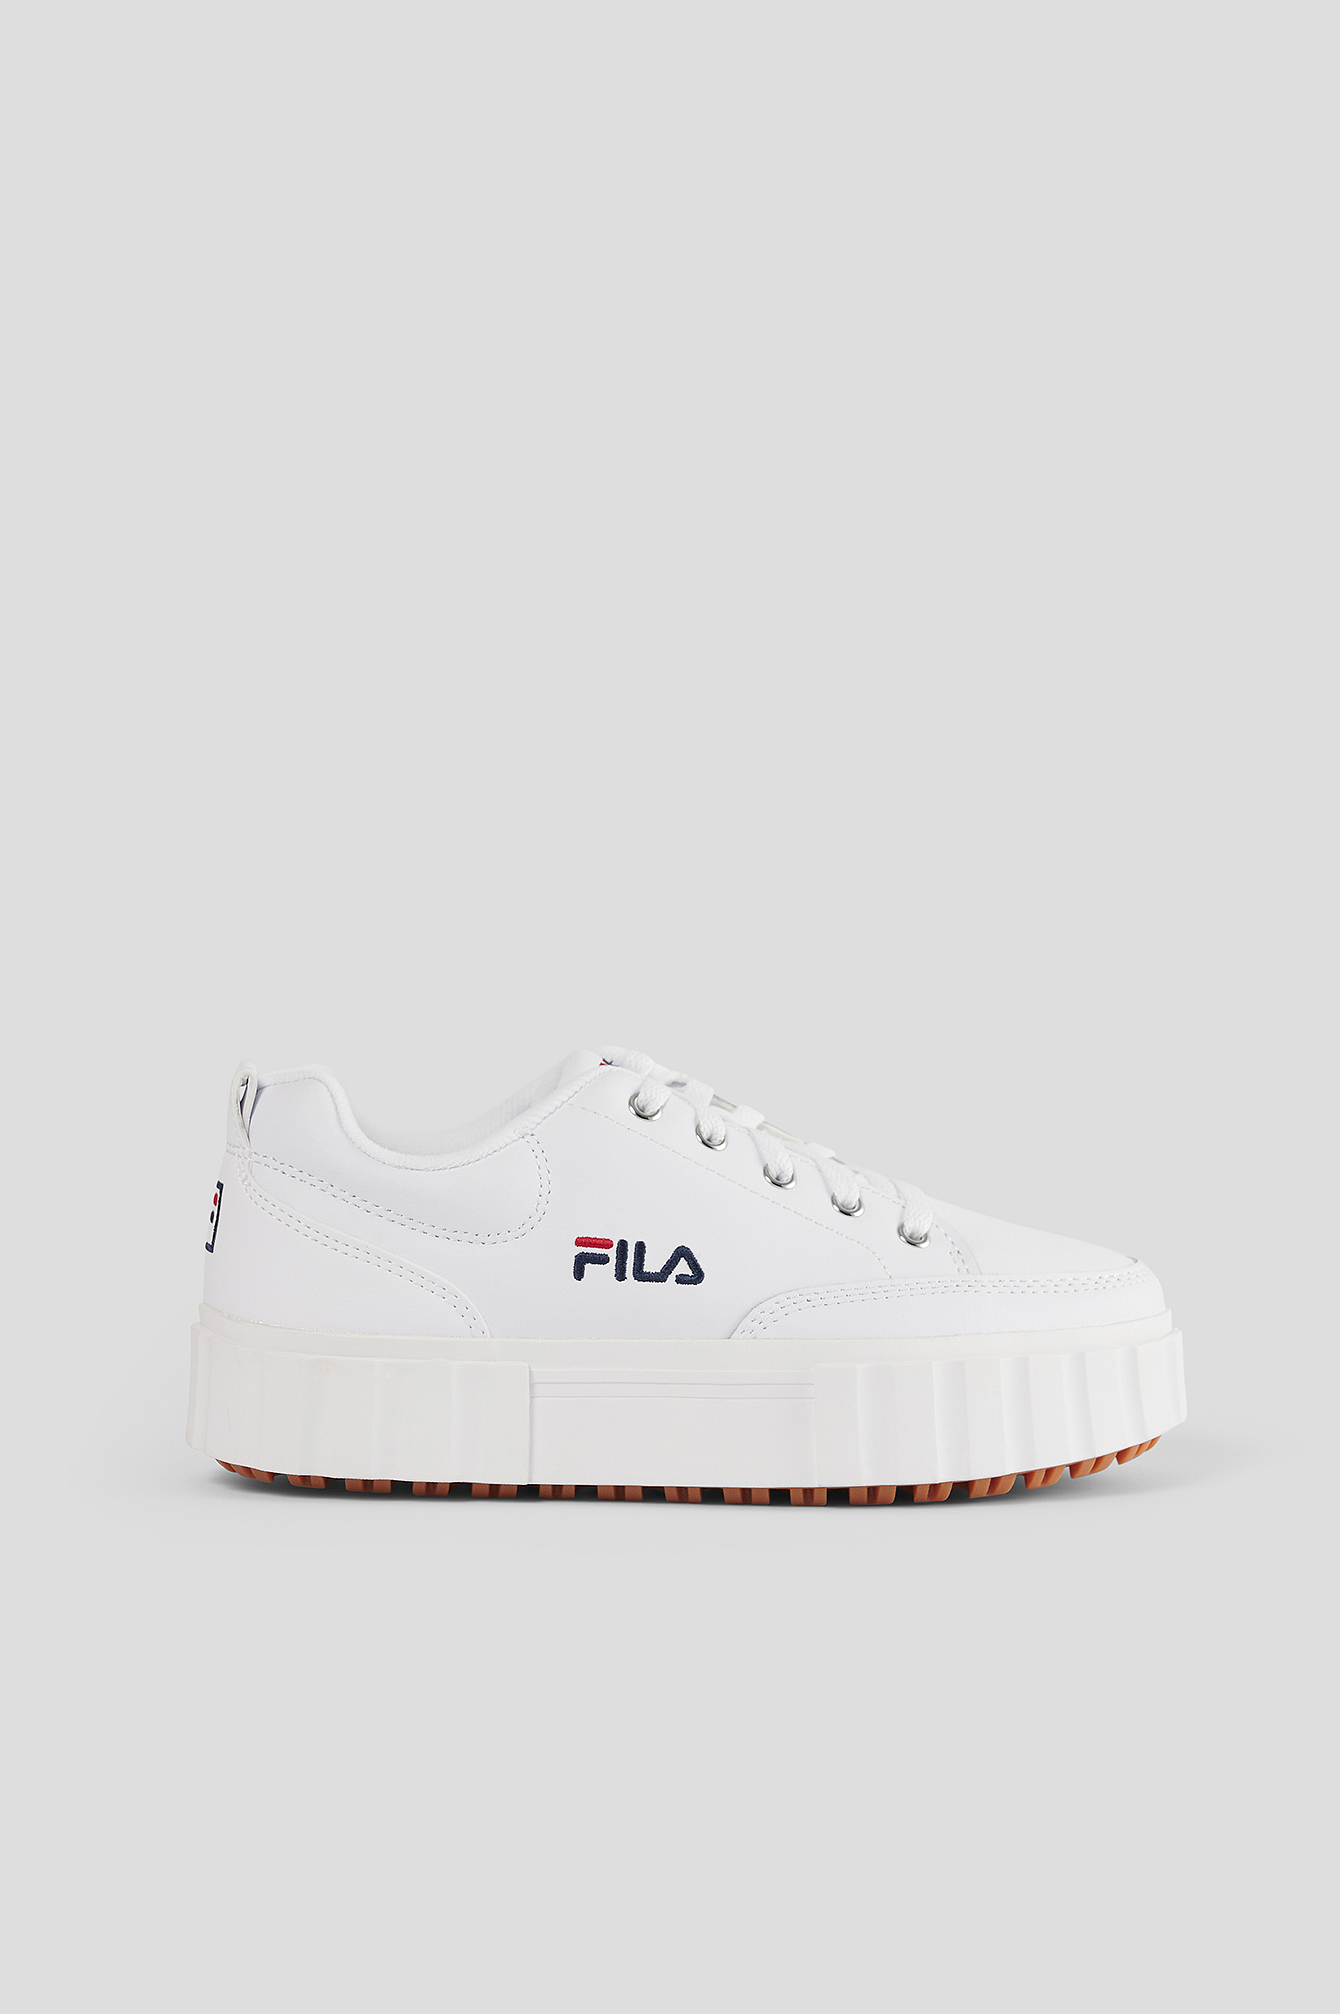 Fila Sandblast Low Wmn White